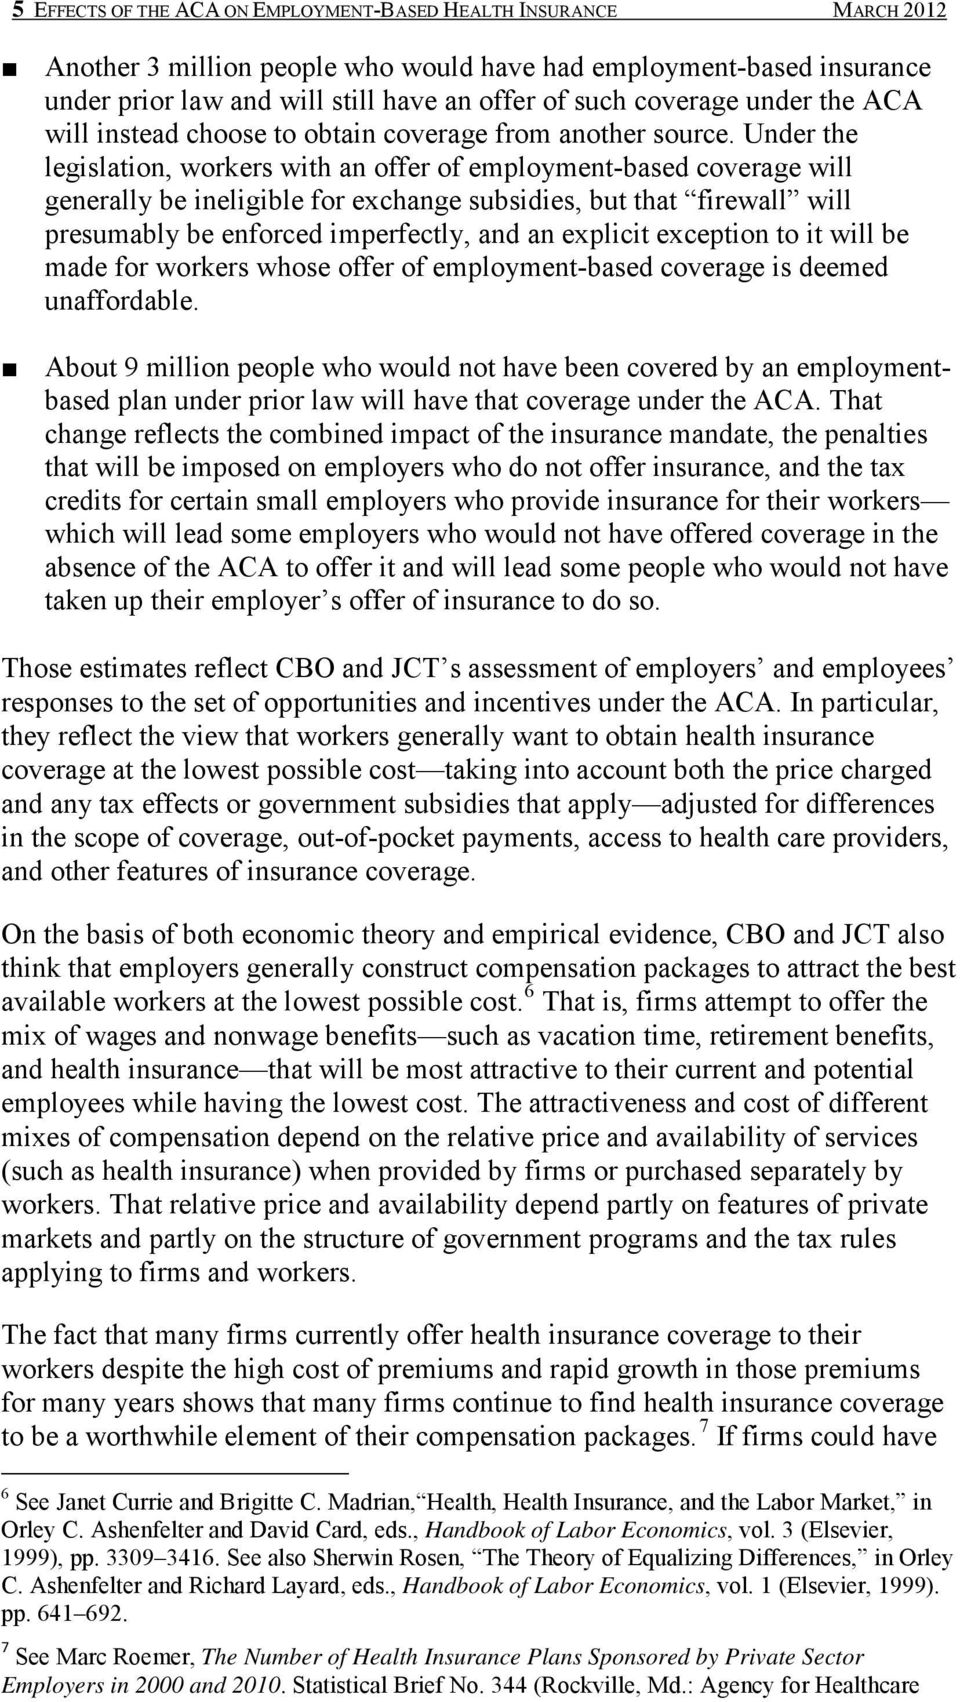 Under the legislation, workers with an offer of employment-based coverage will generally be ineligible for exchange subsidies, but that firewall will presumably be enforced imperfectly, and an